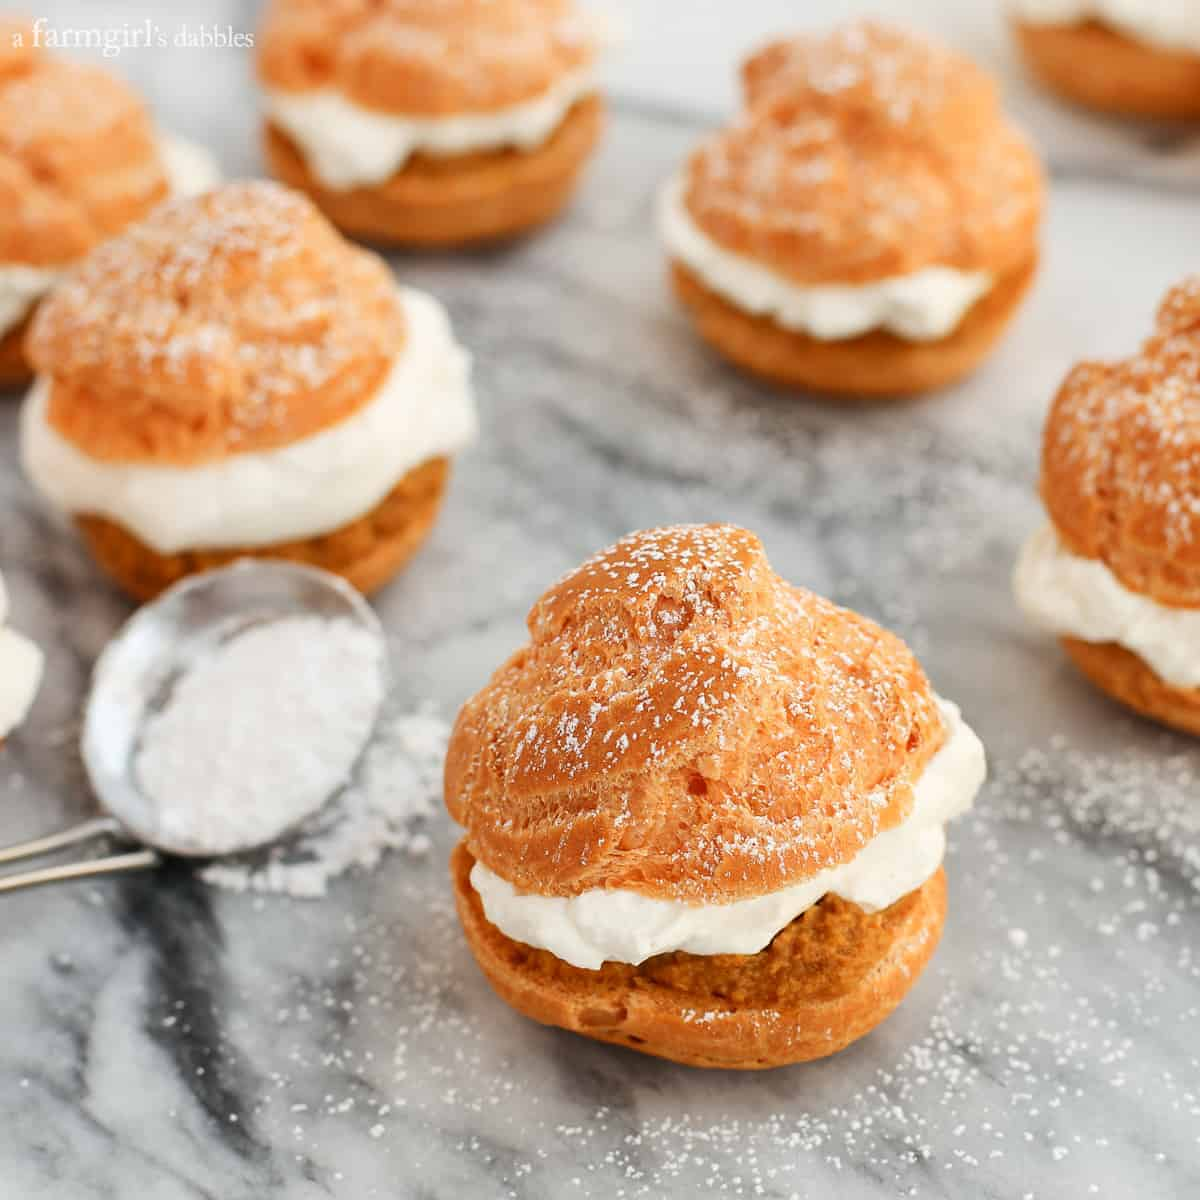 Pumpkin Pie Cream Puffs from afarmgirlsdabbles.com